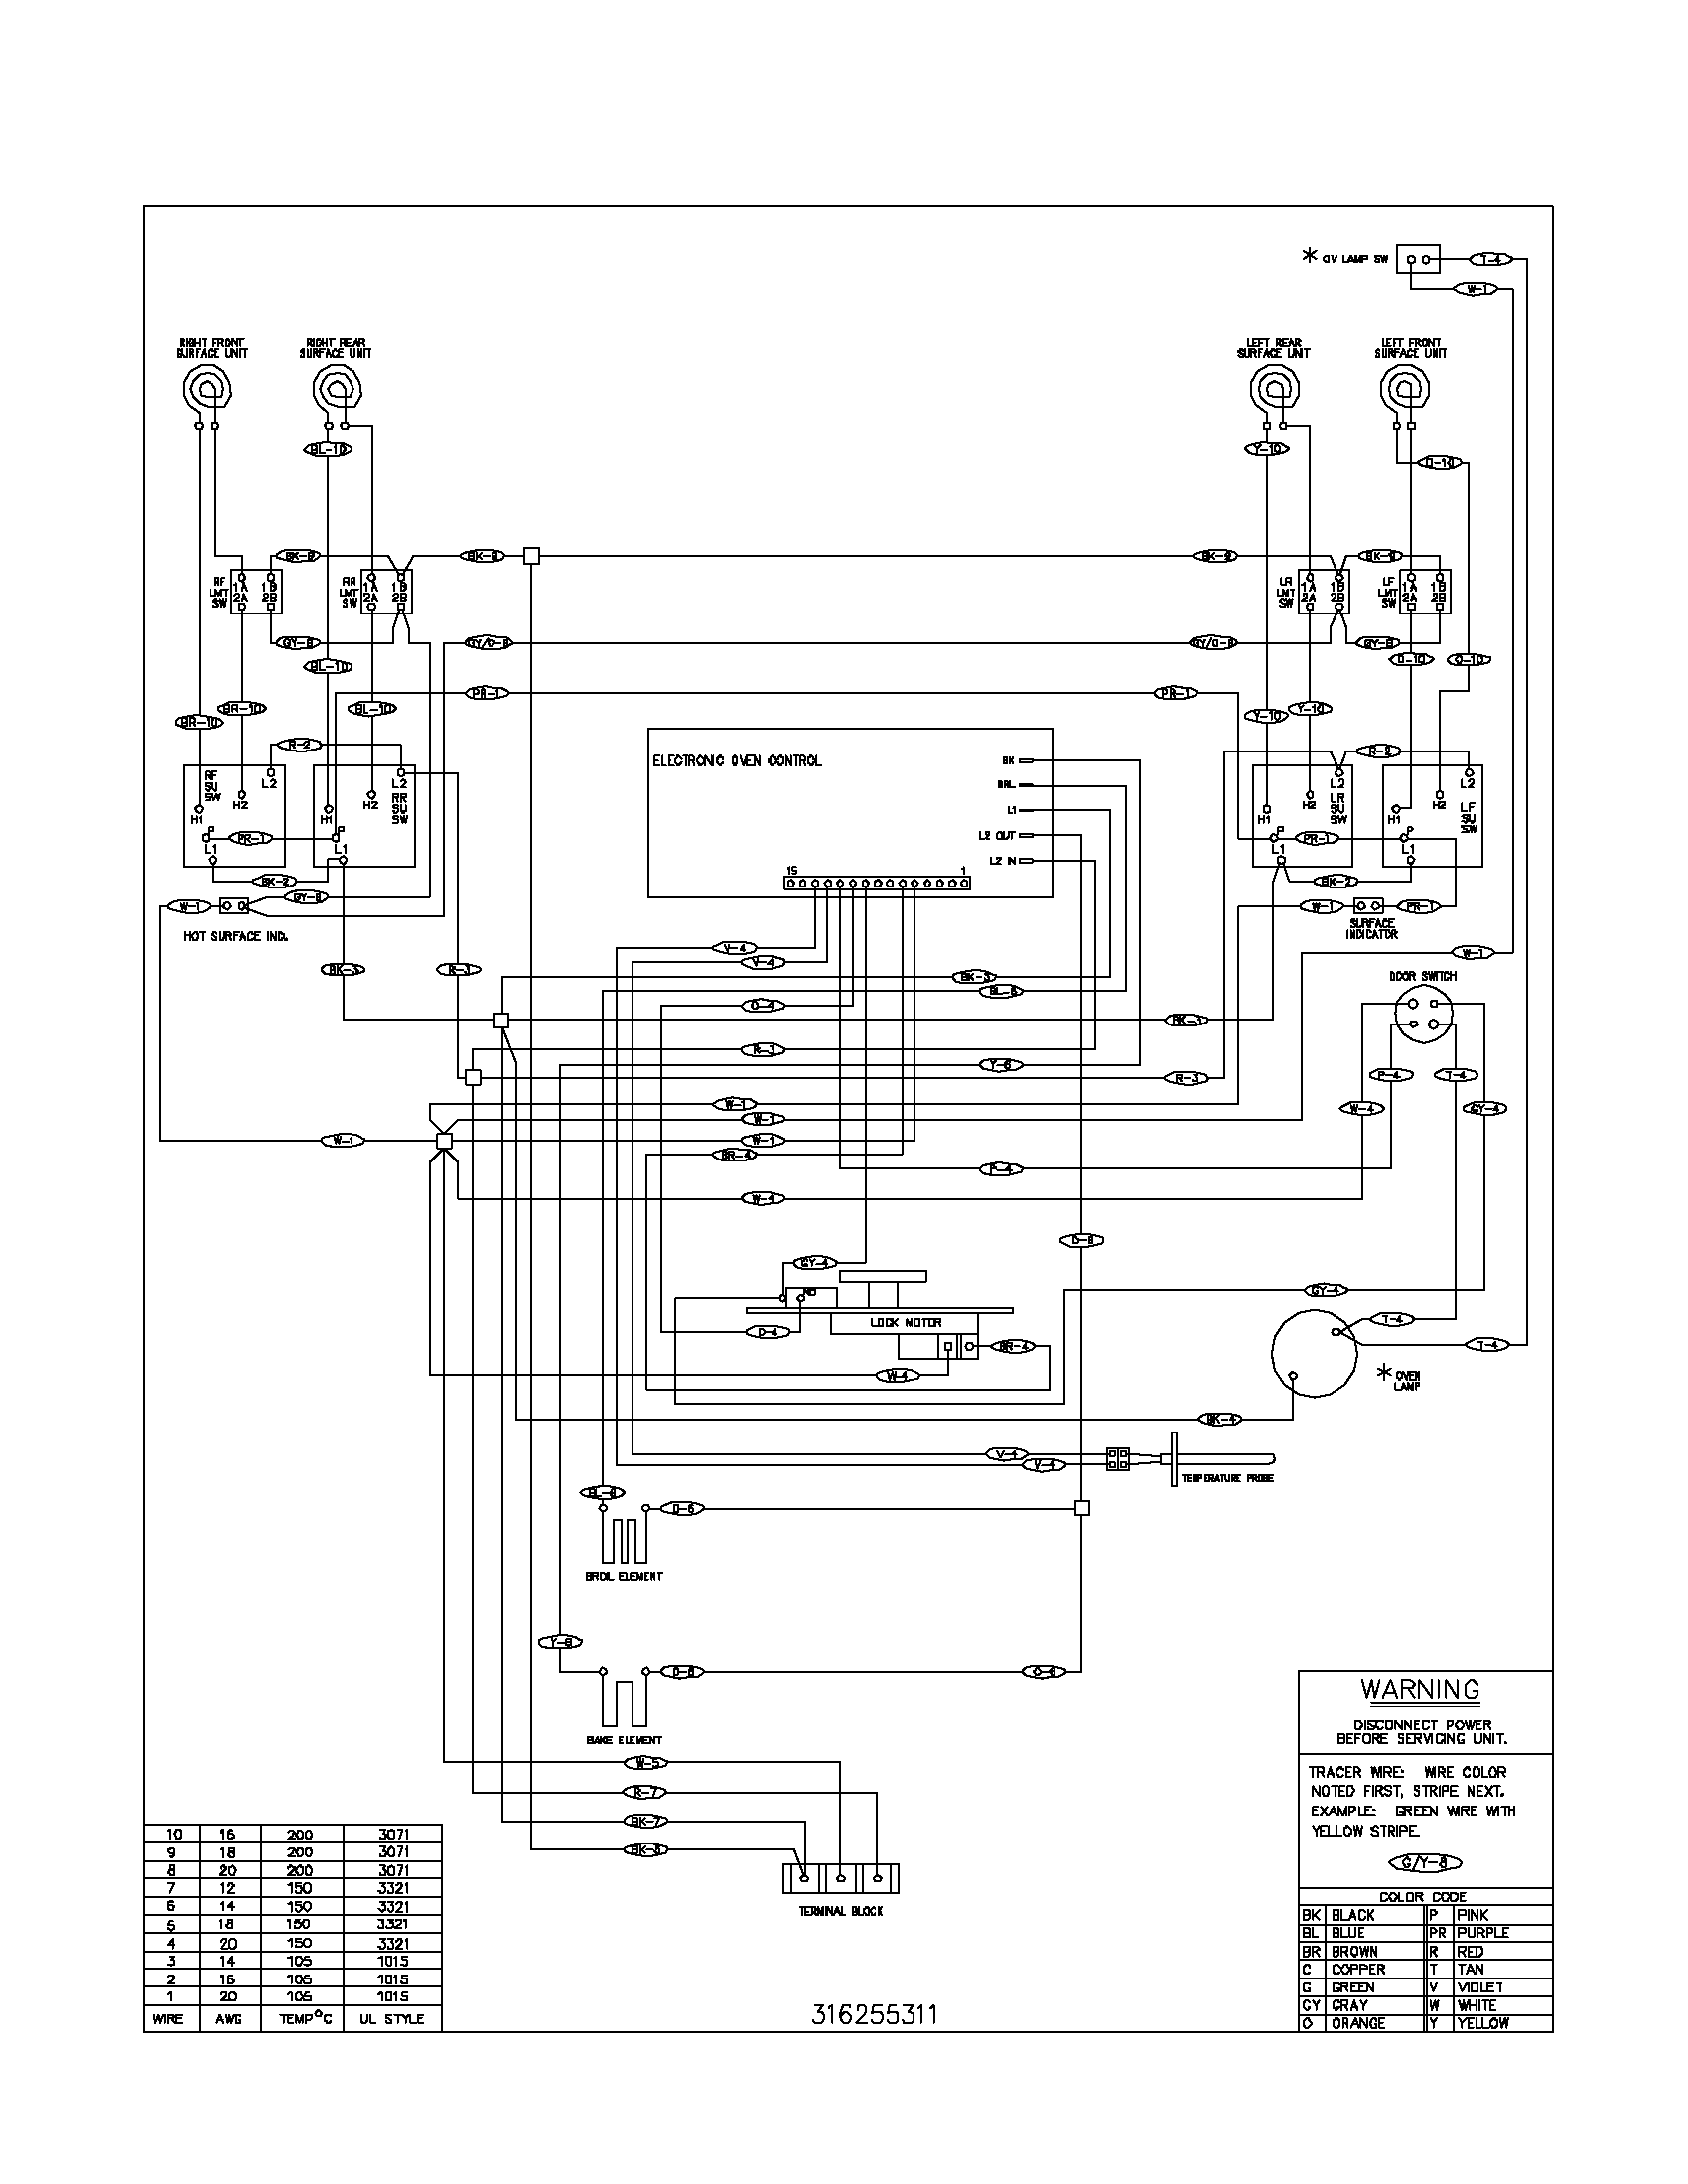 small resolution of frigidaire oven wiring diagram wiring diagram val wiring diagram for a frigidaire oven wiring diagram for frigidaire oven